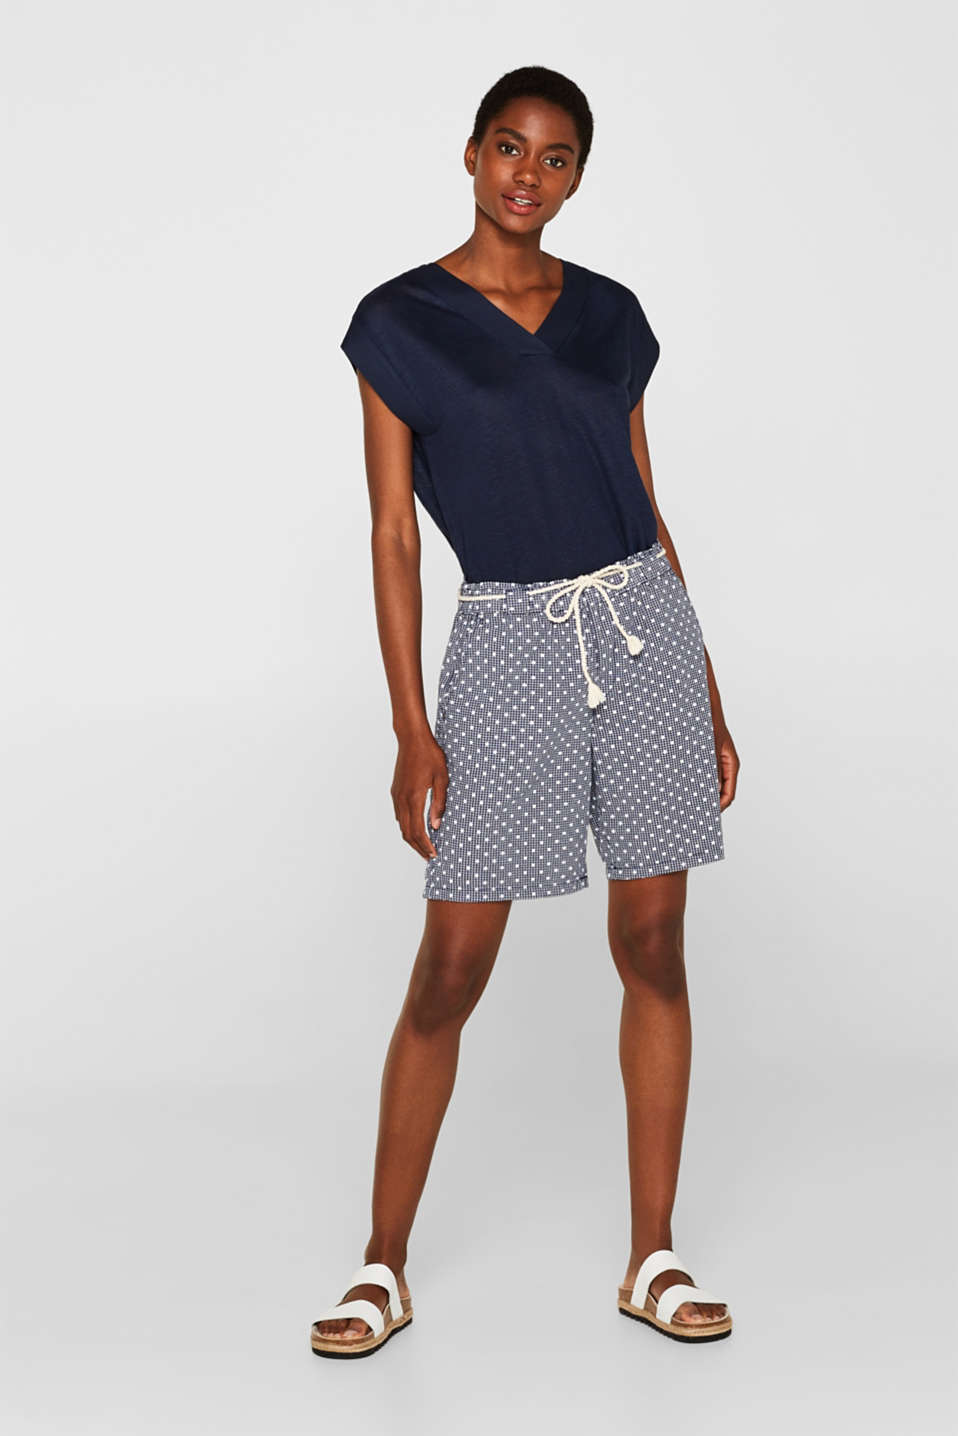 Esprit - Checked shorts with a polka dot print, 100% cotton